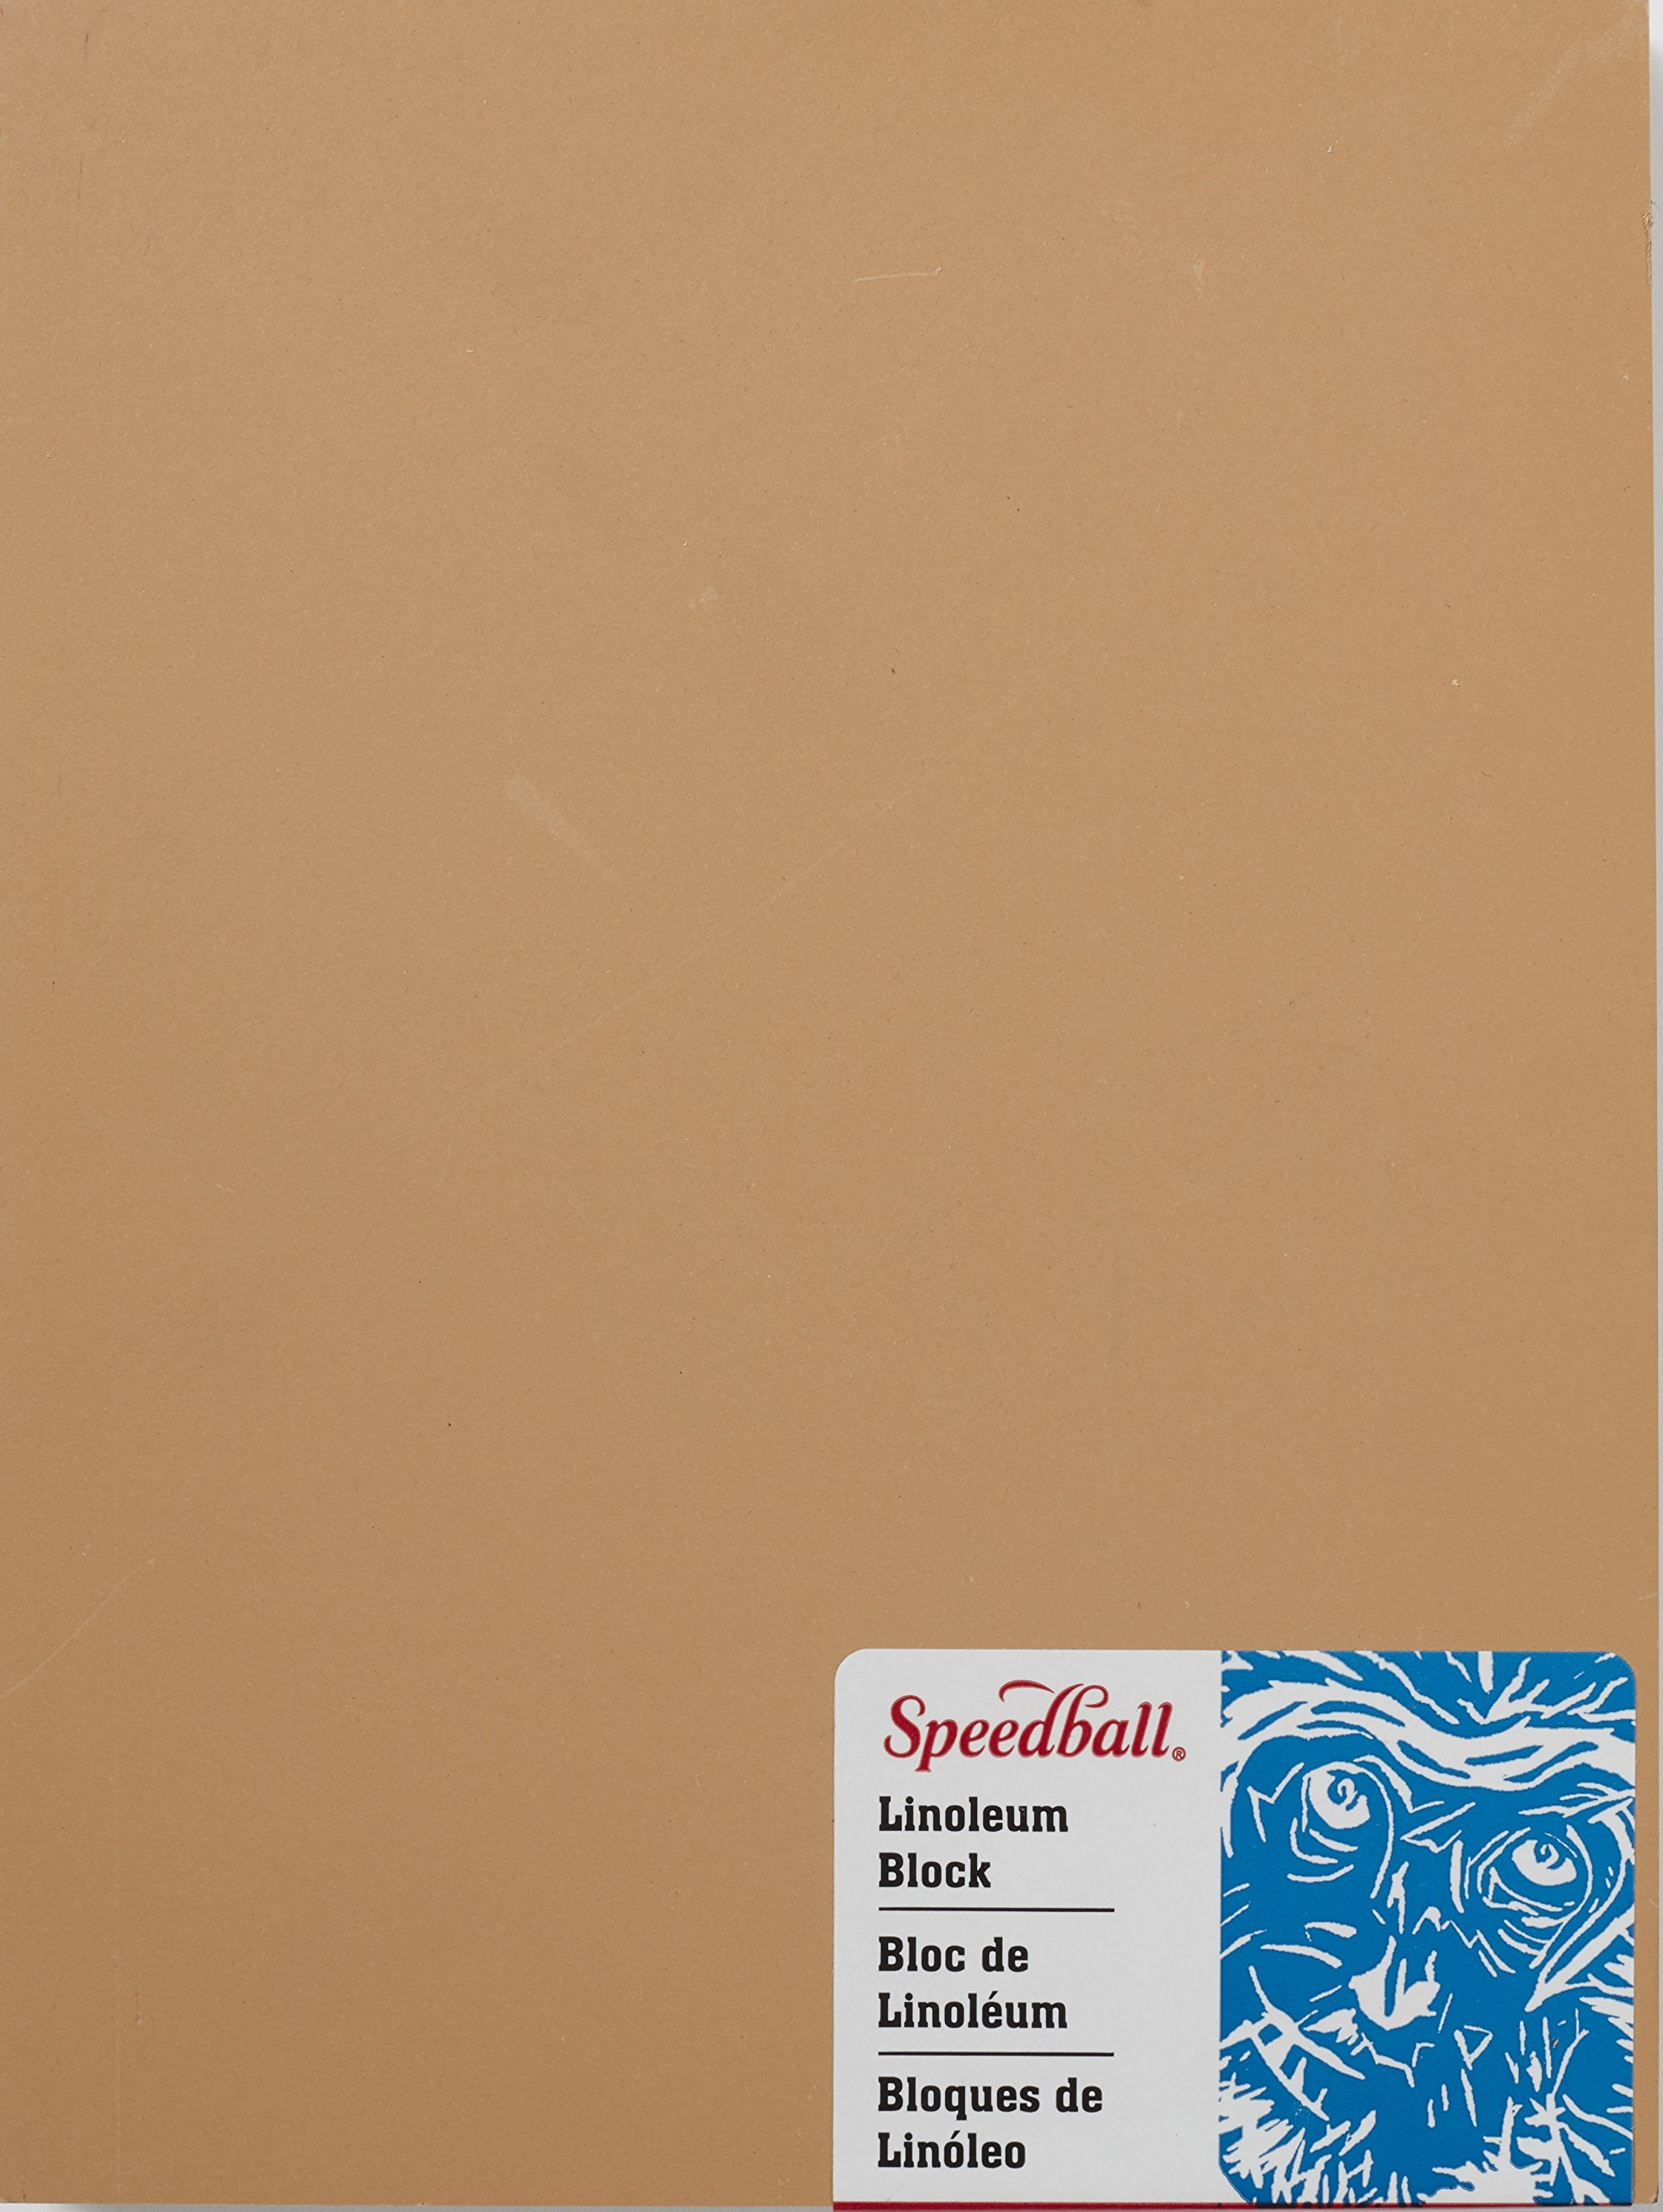 Speedball 4311 Premium Mounted Linoleum Block – Fine, Flat Surface for Easy Carving, Smoky Tan, 6 x 8 Inches